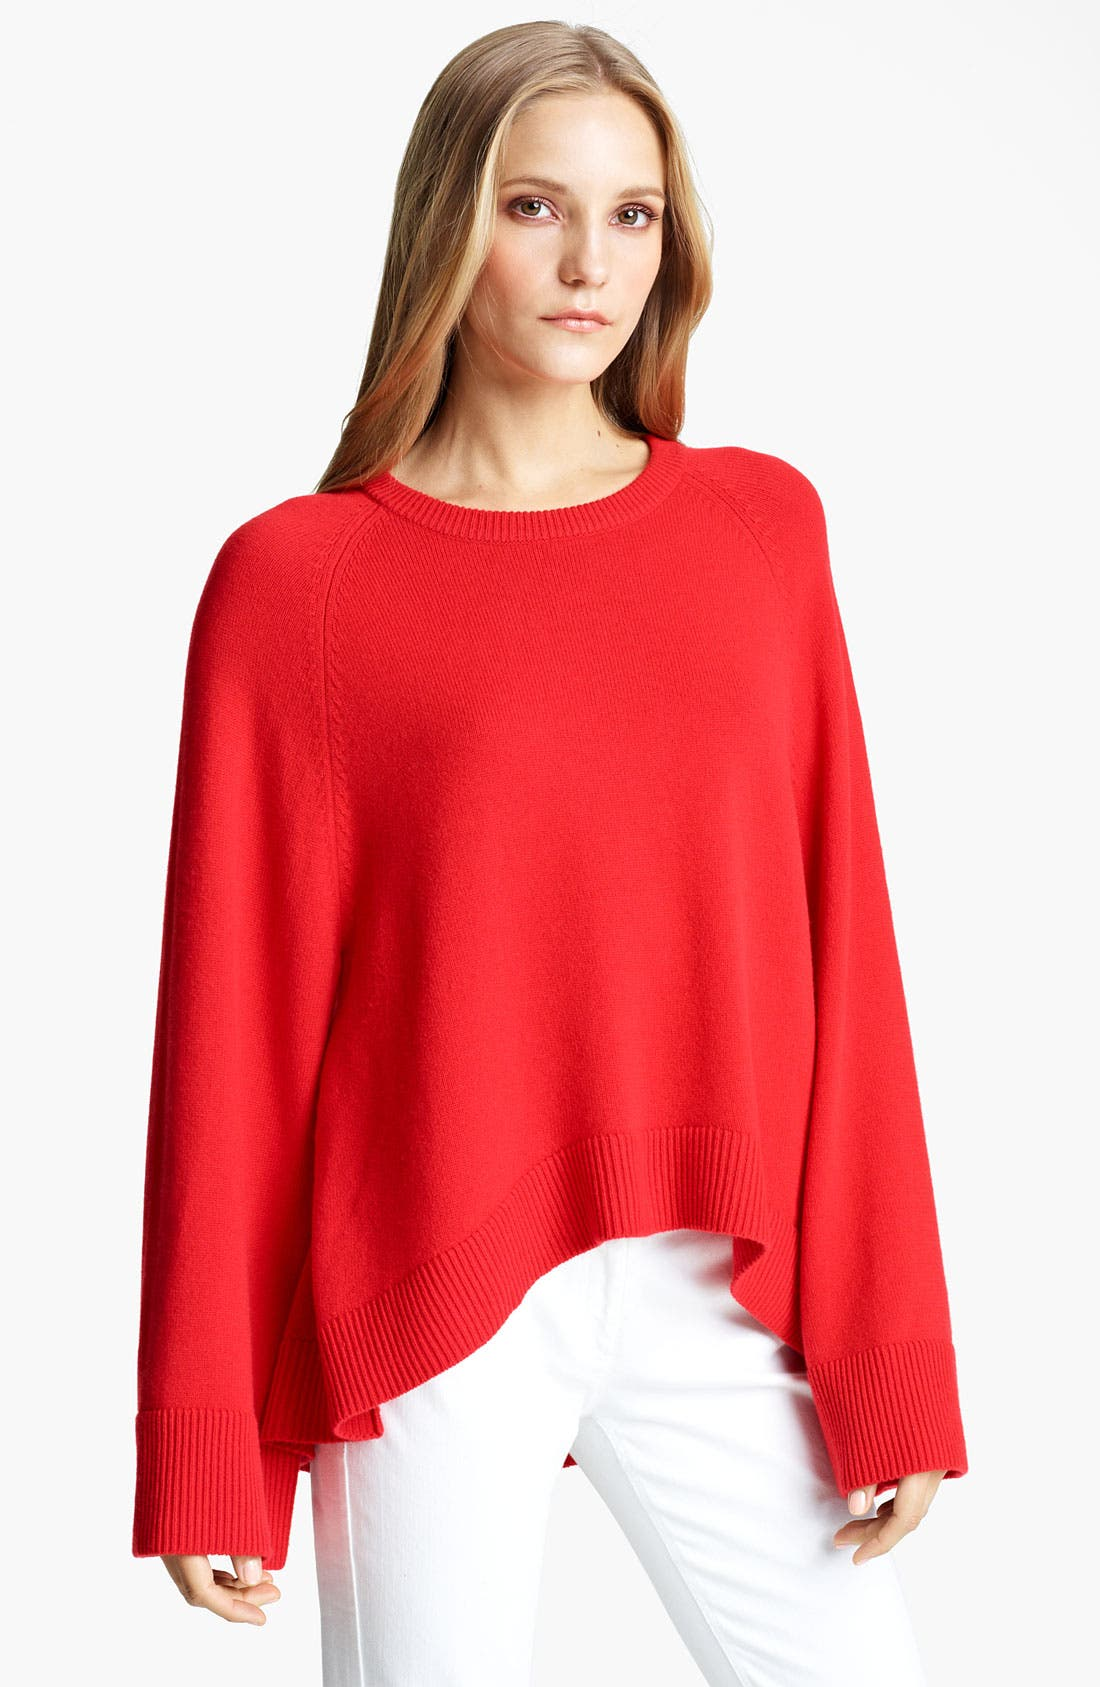 Alternate Image 1 Selected - Michael Kors Cashmere Tunic